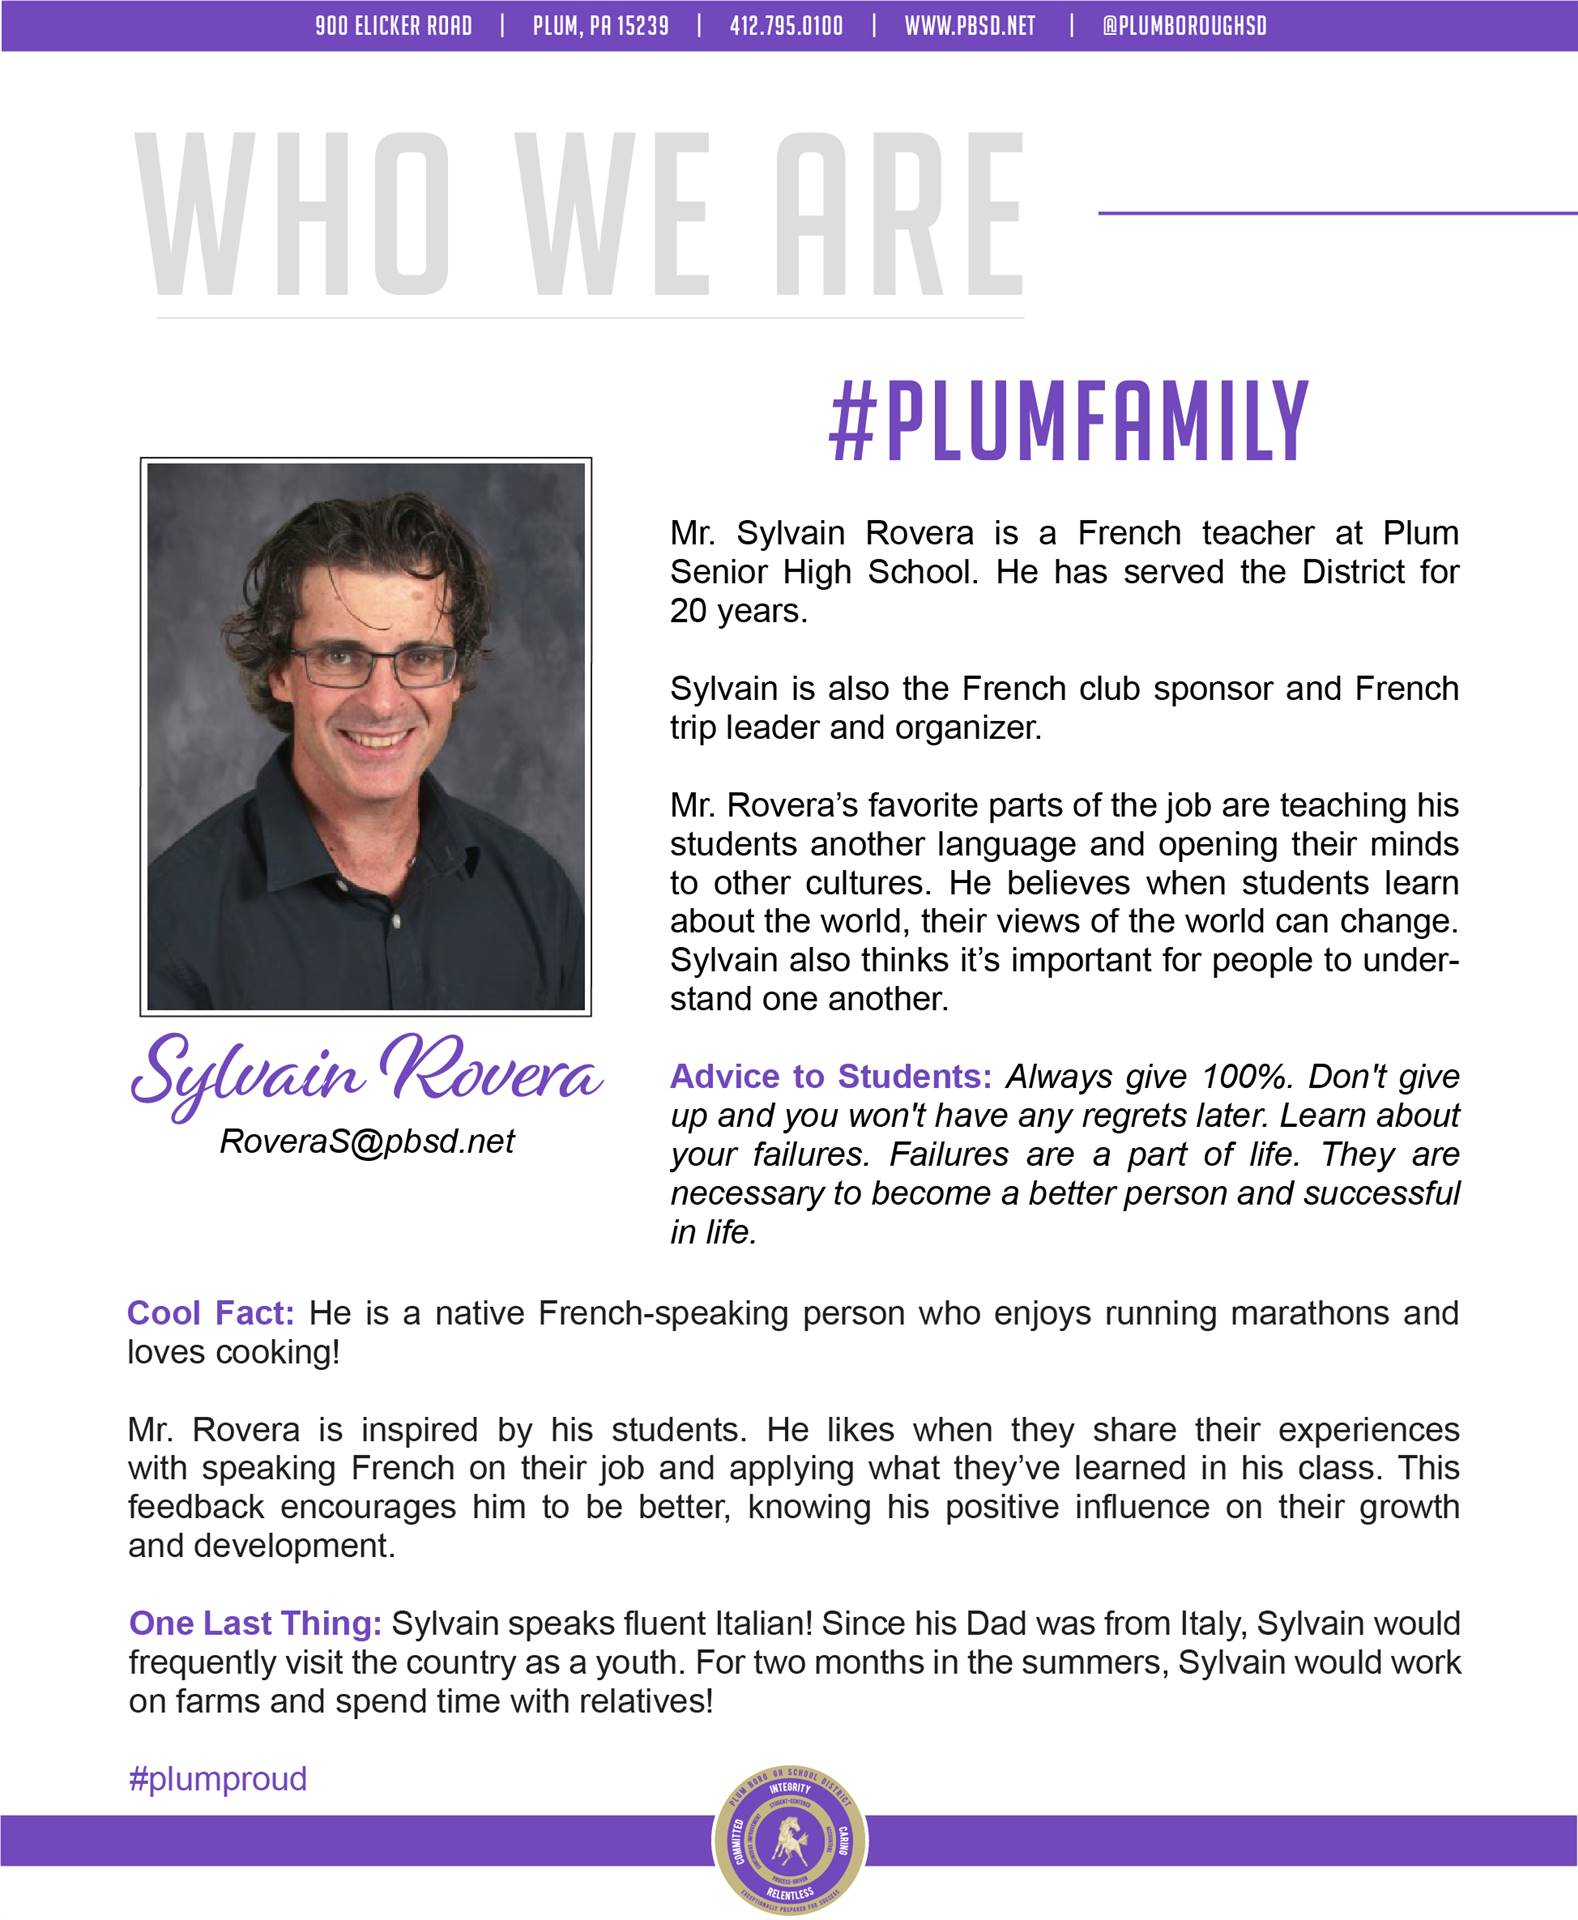 Who We Are Wednesday features Sylvain Rovera.